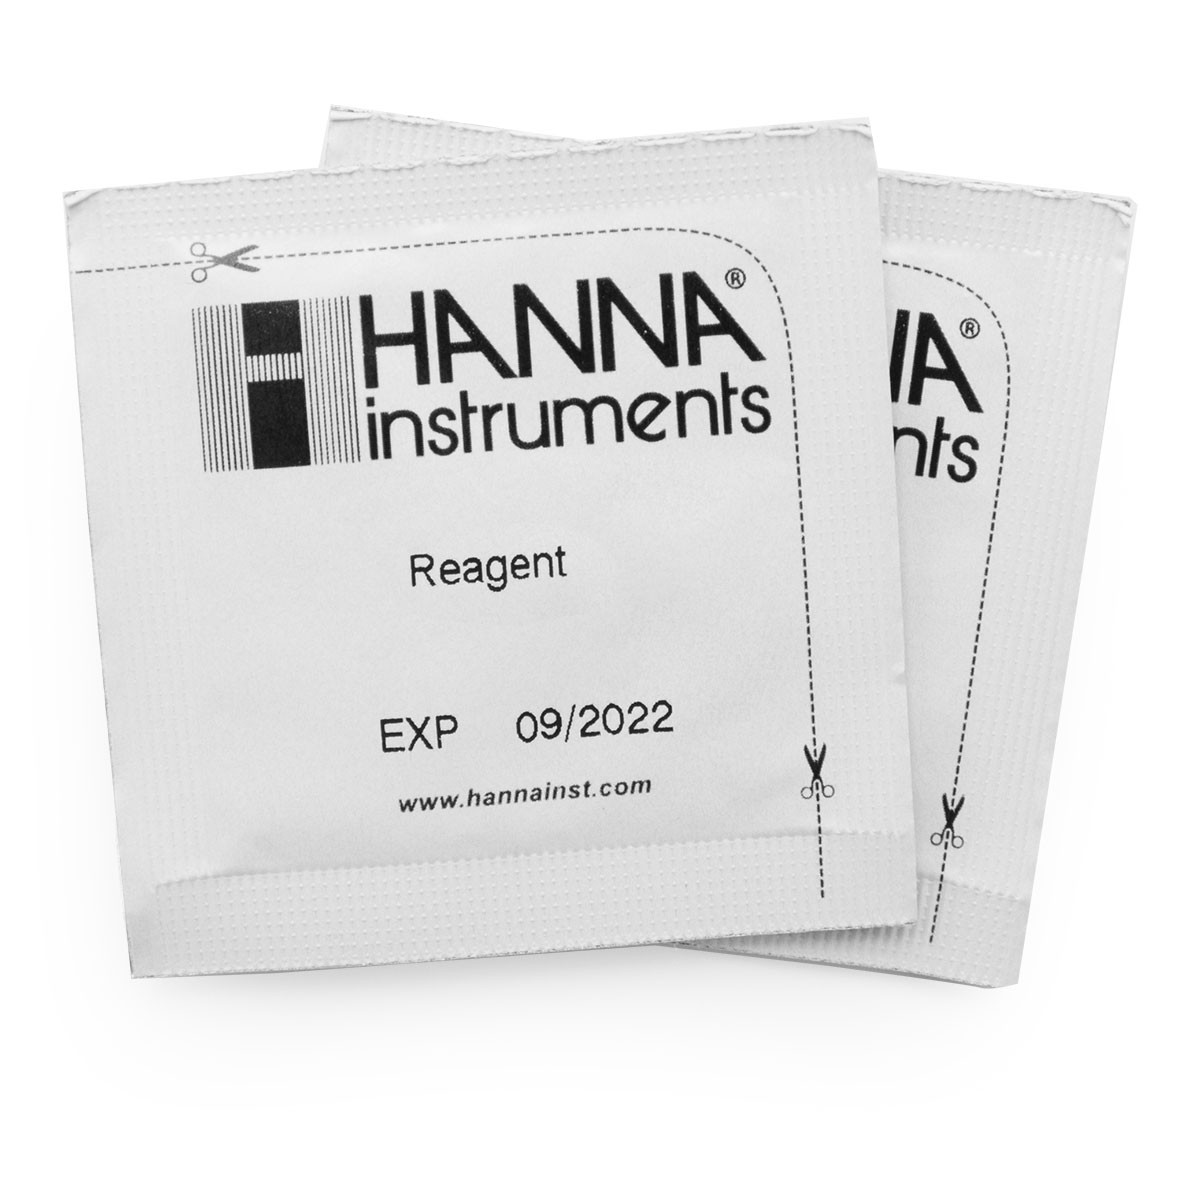 Sulfate Reagents (100 tests)